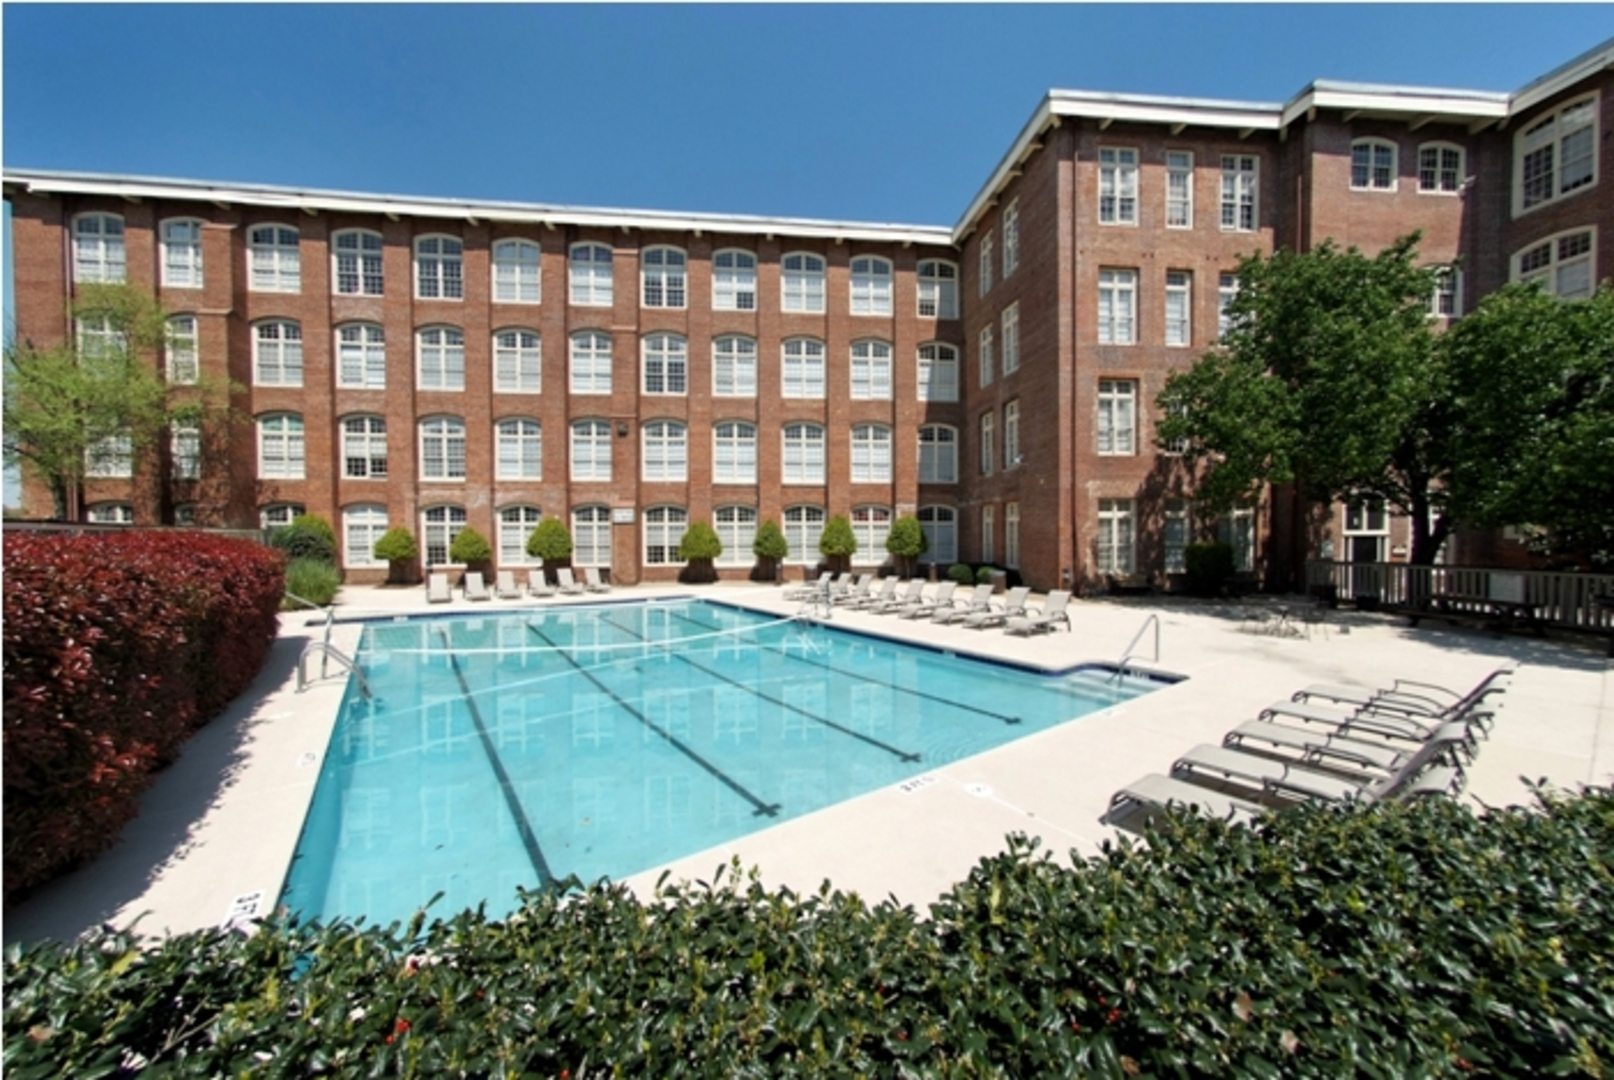 One bedroom apartments in columbia sc near usc latest bestapartment 2018 for Two bedroom apartments in columbia sc